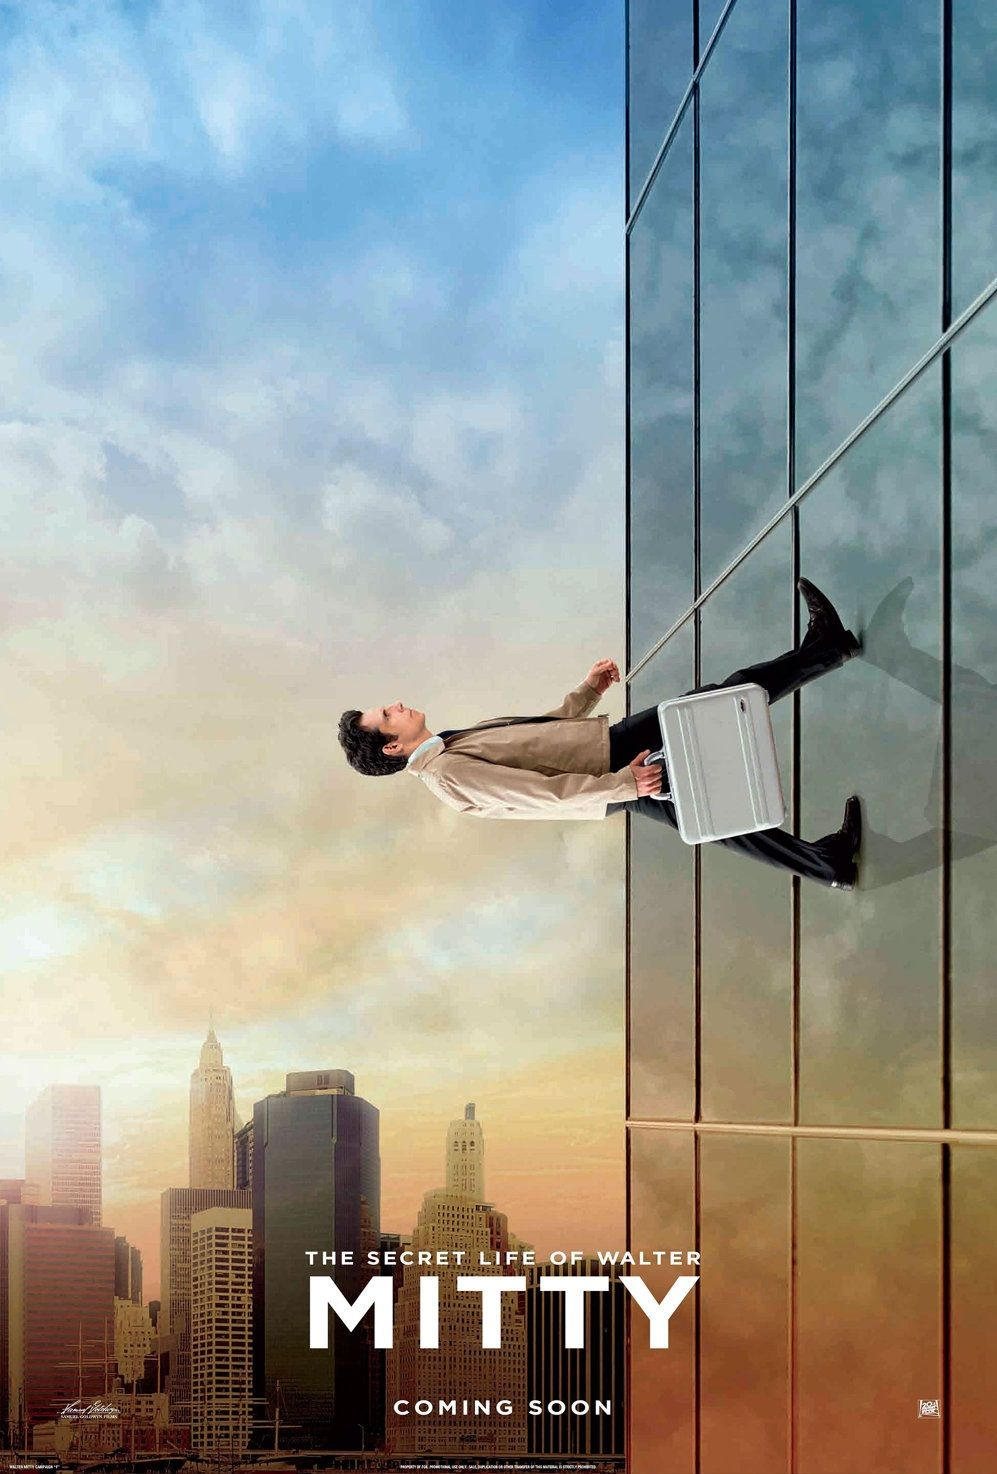 the life of walter mitty alternate The secret life of walter mitty was a 2013 comedy-drama starringben stiller the plot revolved around an assets manager who dreamsdo adventure and the.